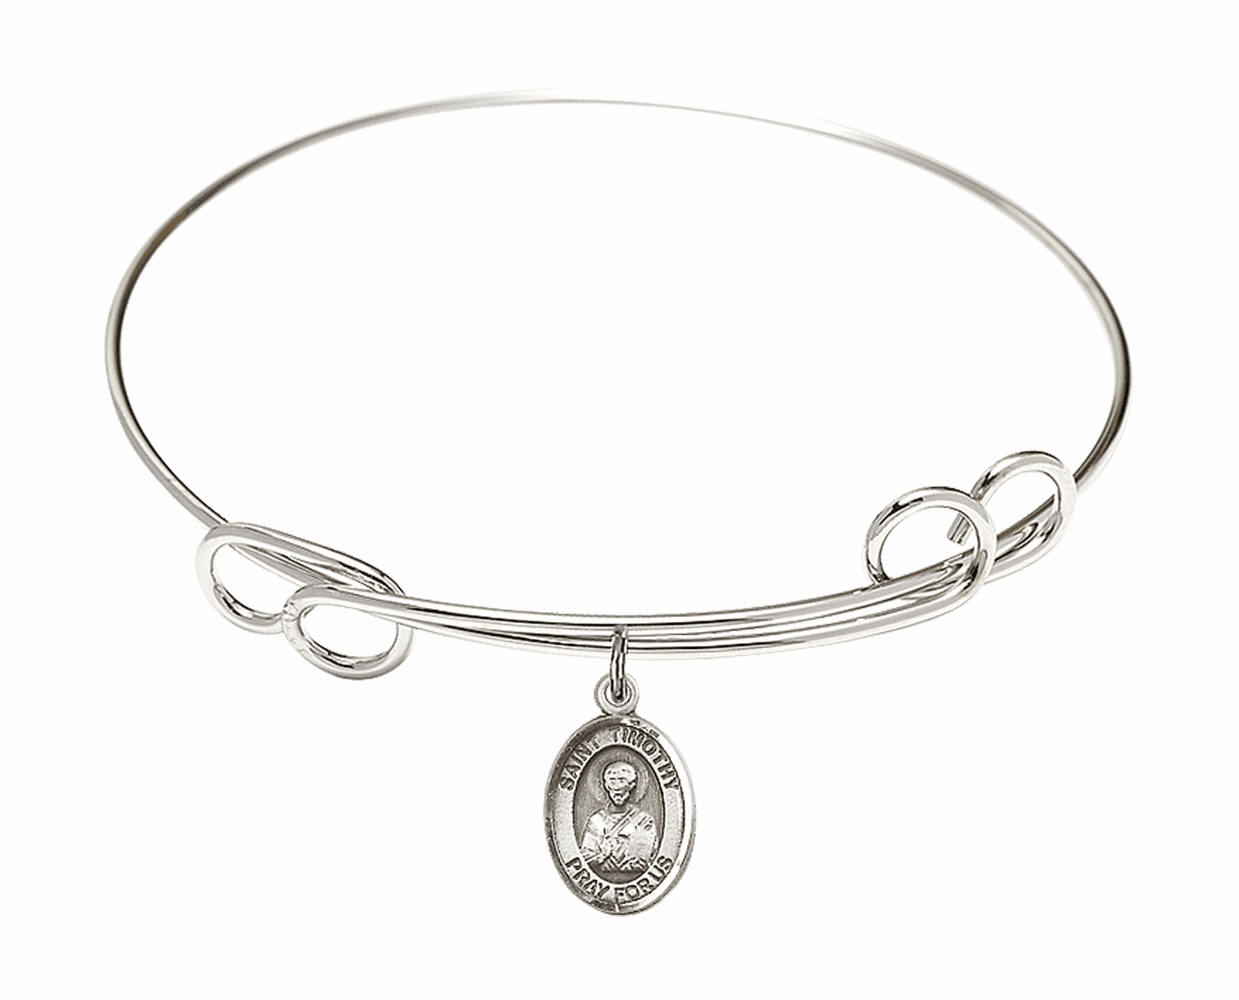 Round Loop St Timothy Bangle Charm Bracelet by Bliss